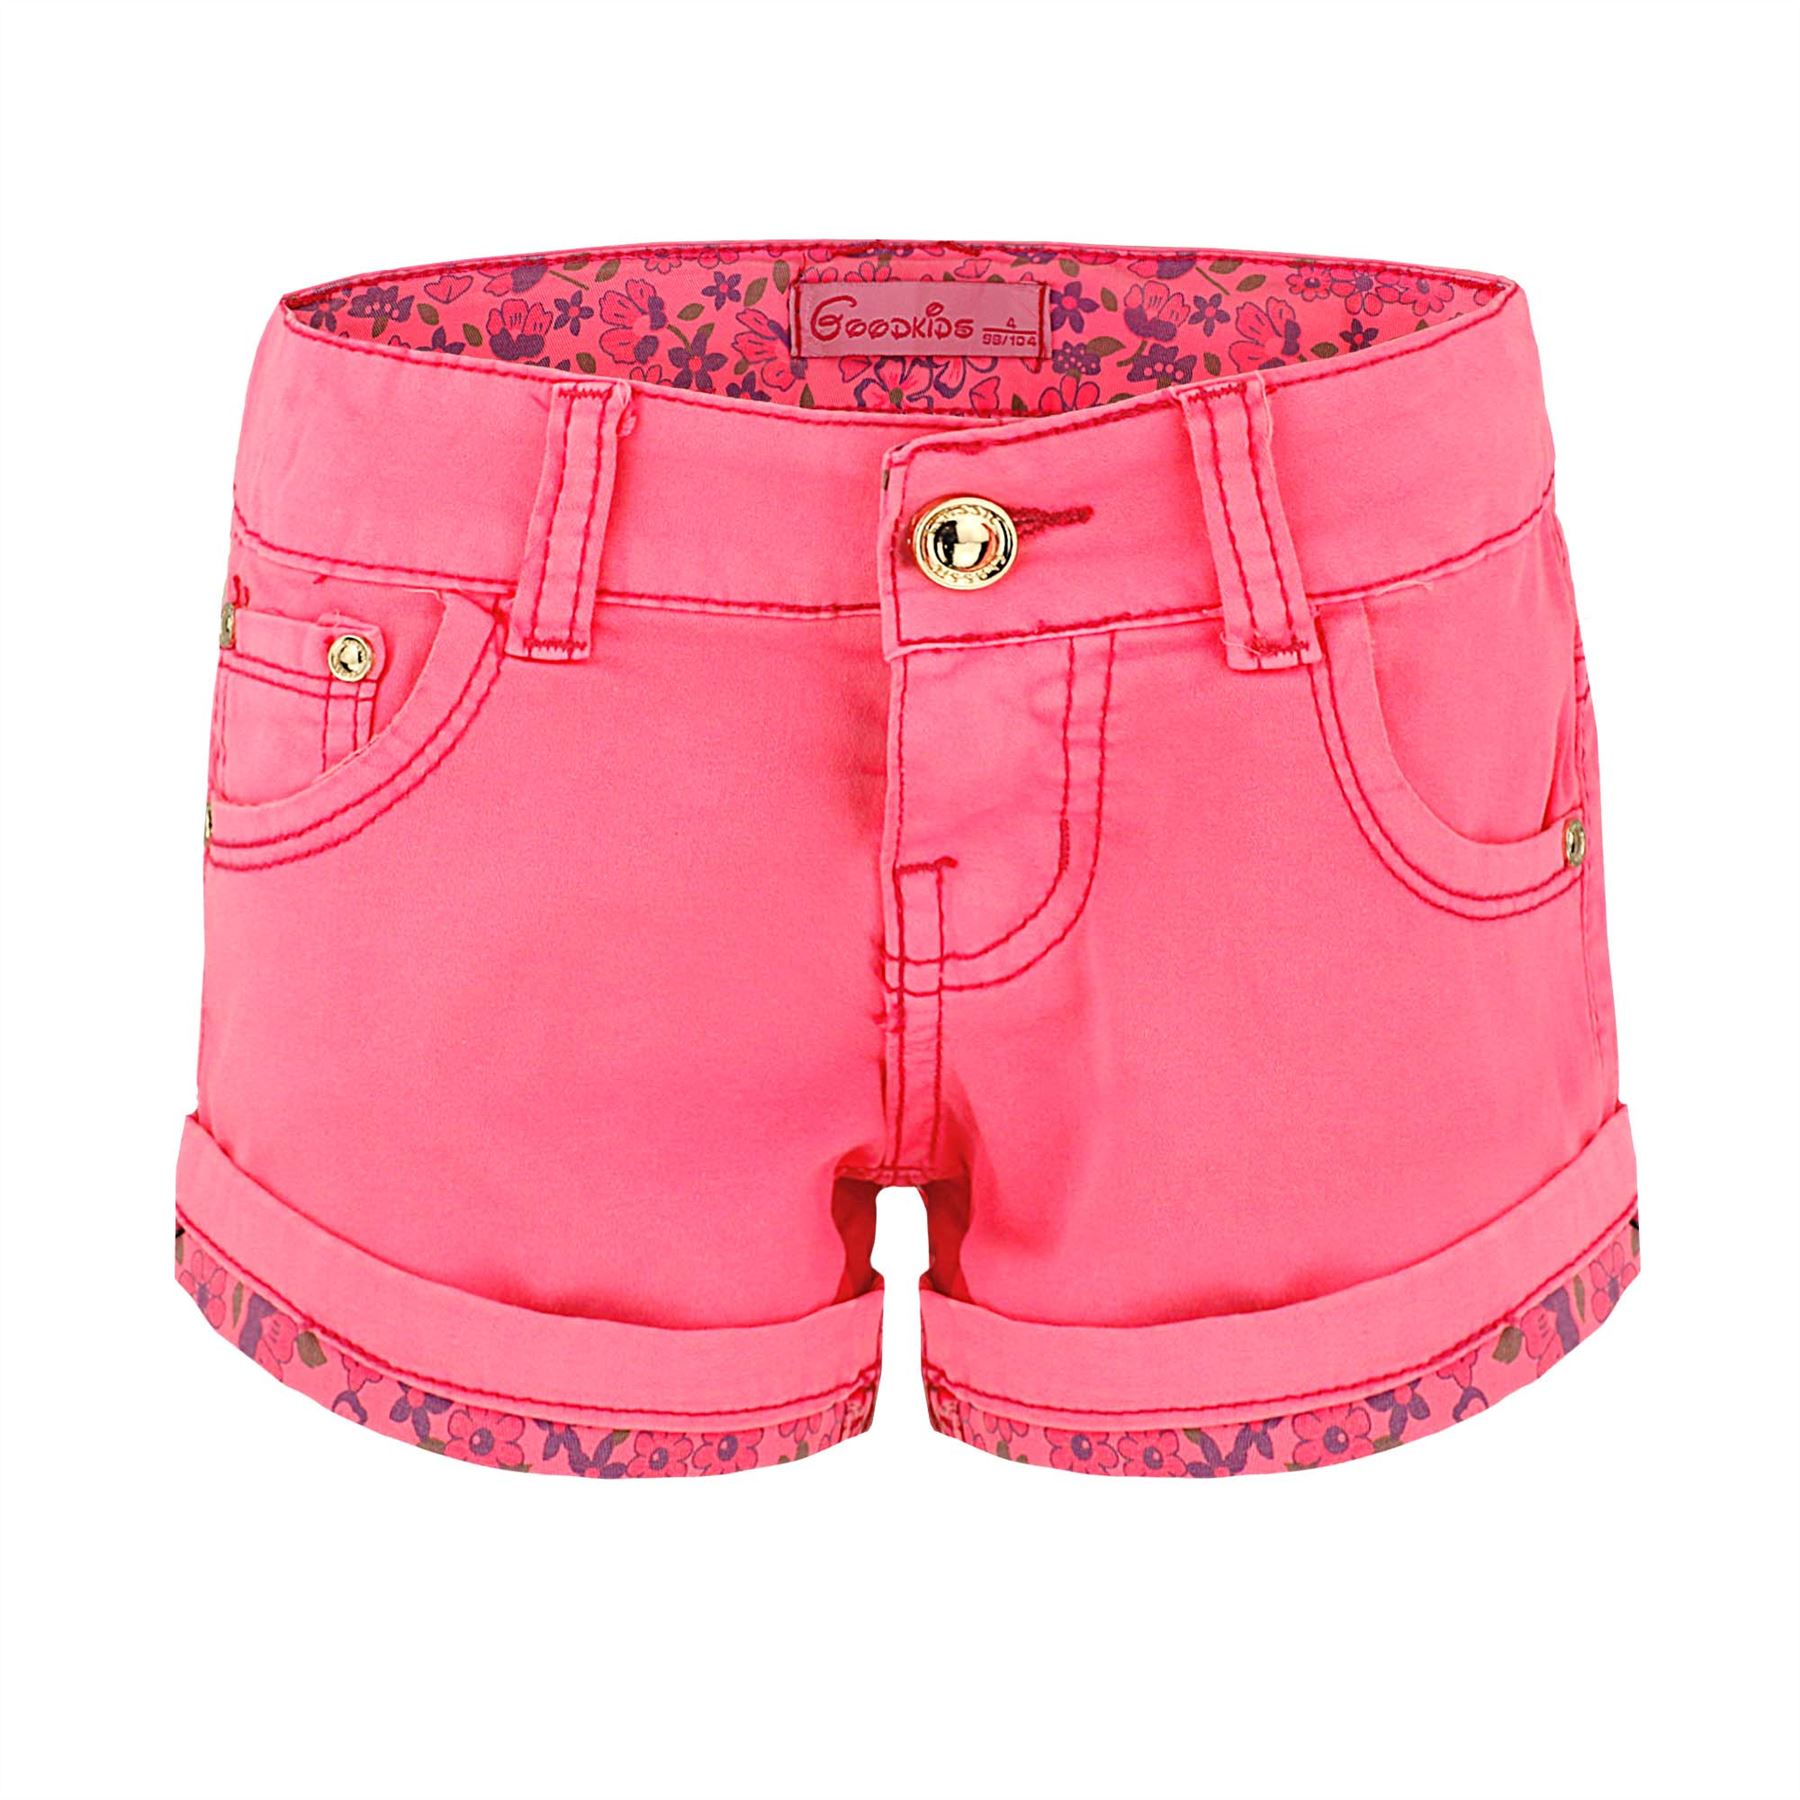 GIRLS-COLOUR-DENIM-SHORTS-FLORAL-HEM-KIDS-COTTON-FASHION-HOTPANTS-SIZE-3-14Y